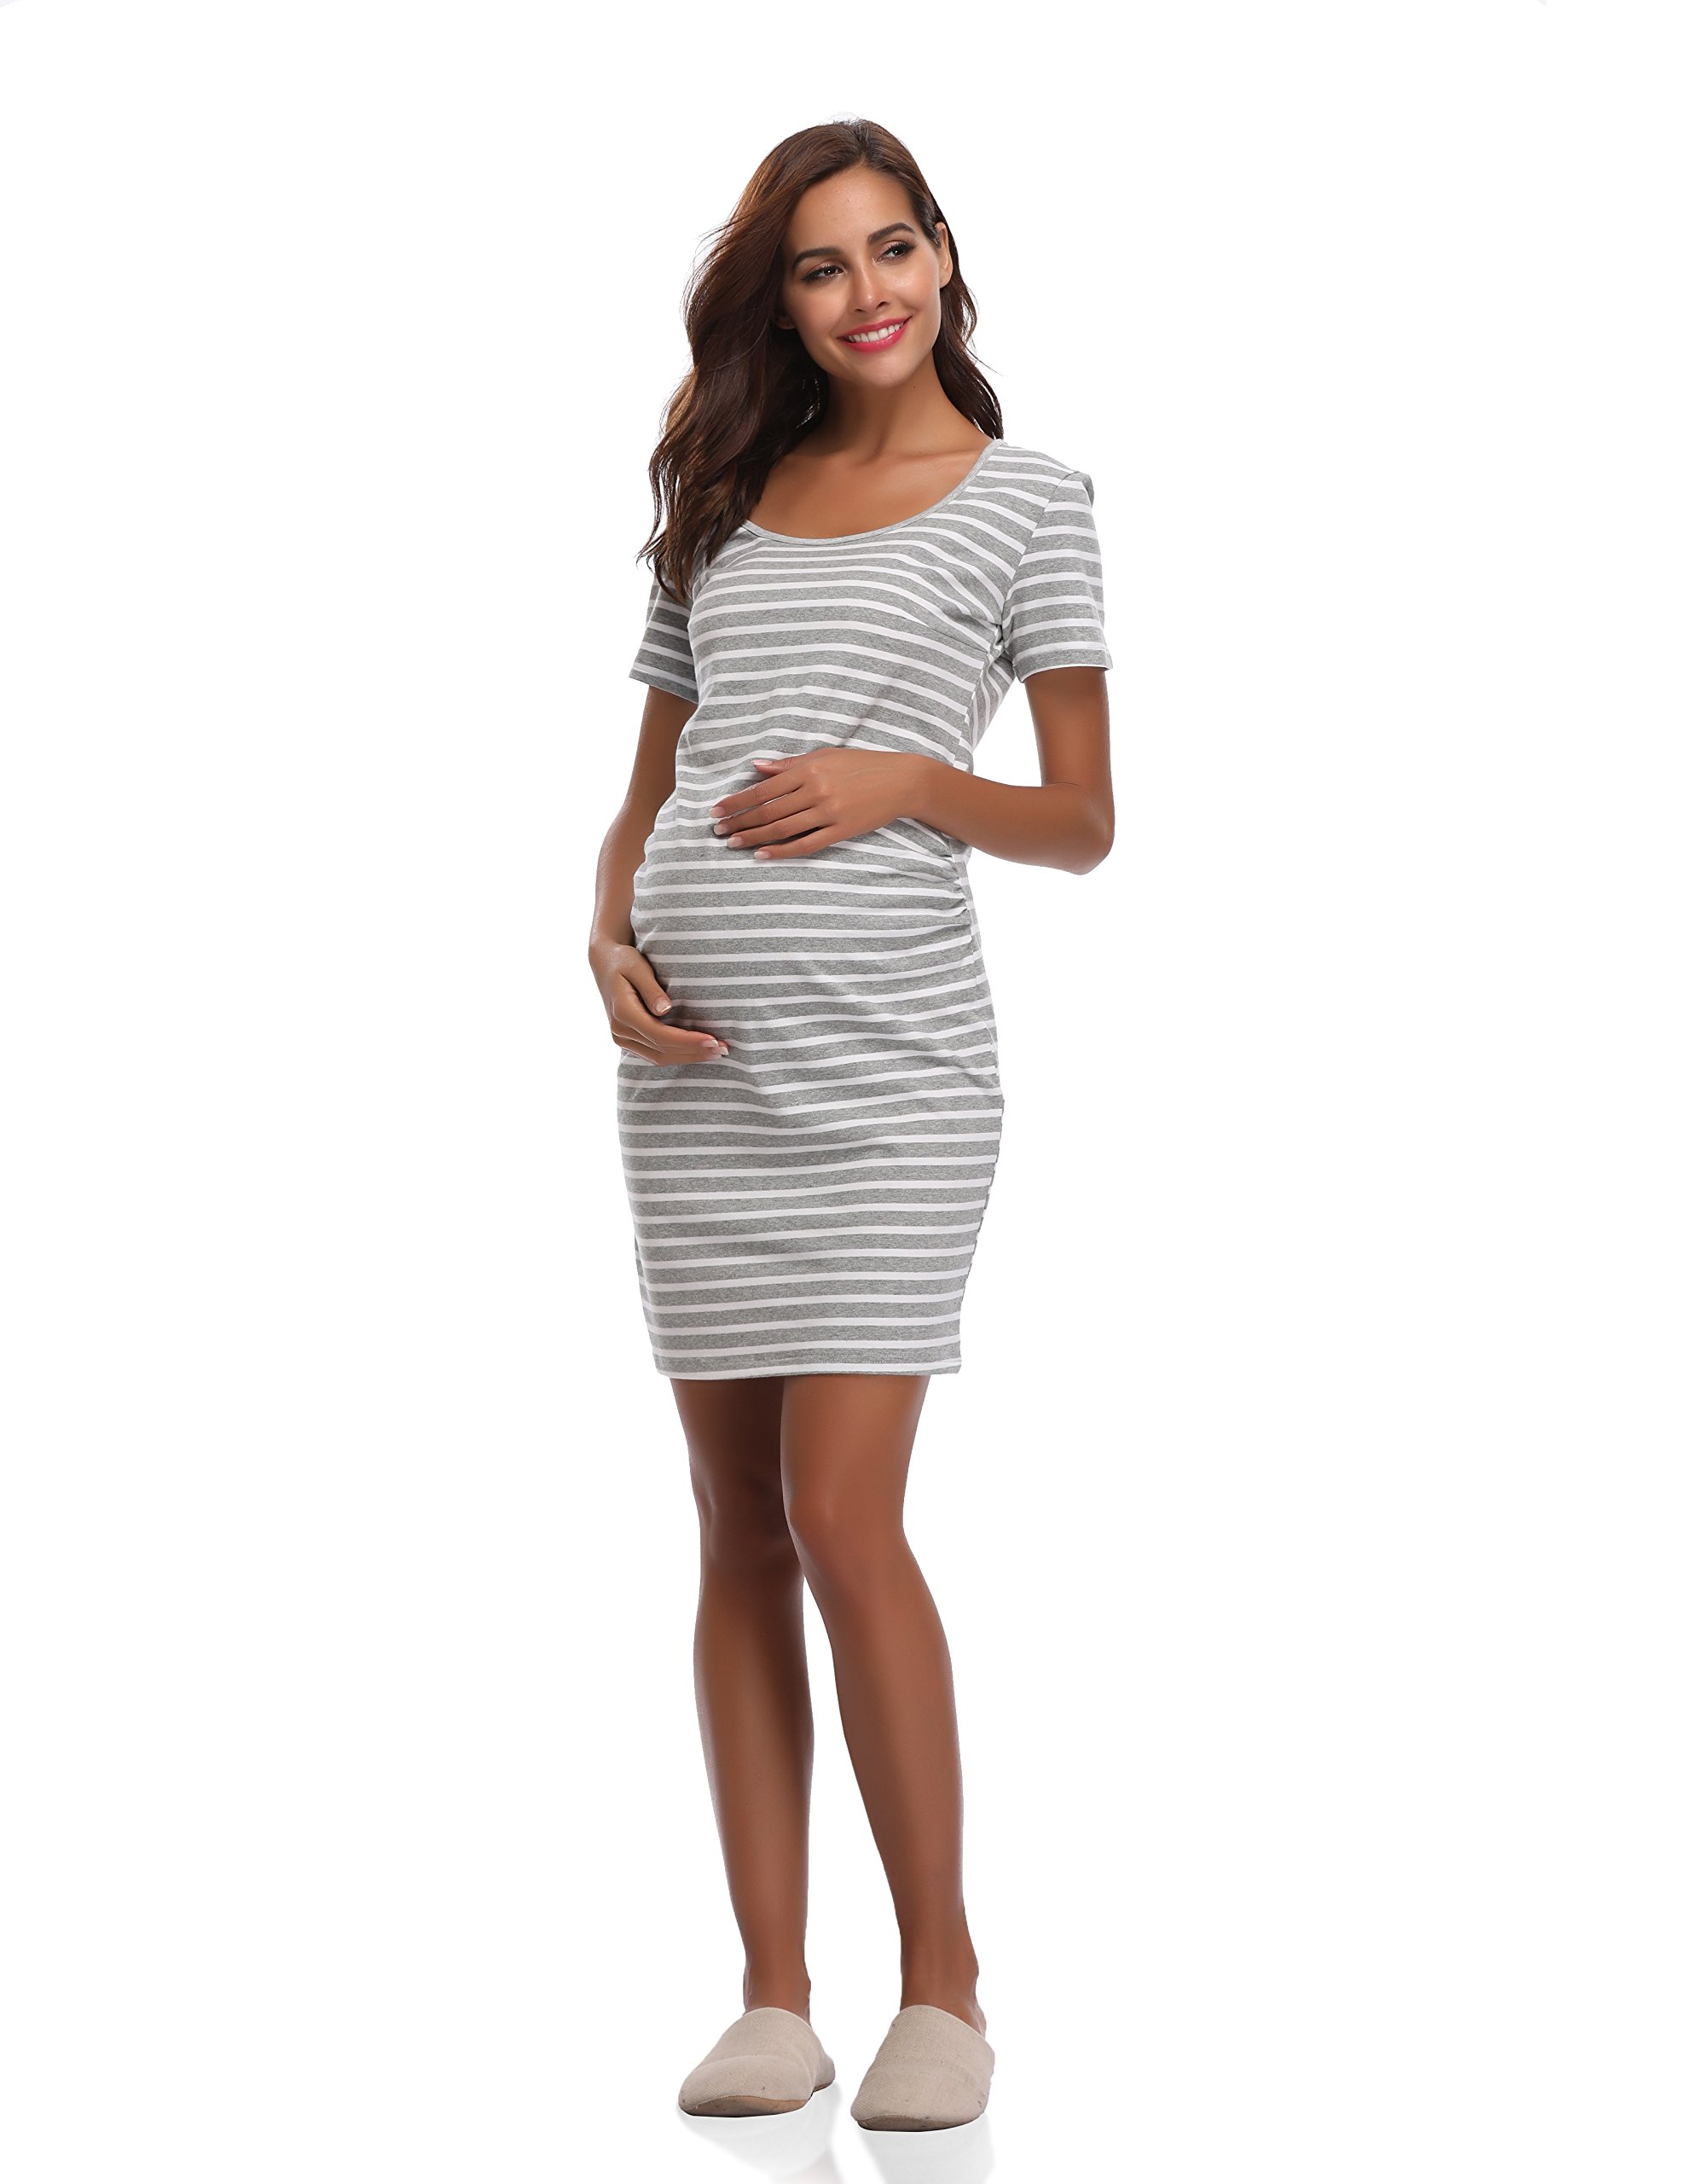 Floating Time Women's Short Sleeve Maternity Dress(S, Grey Stripes)